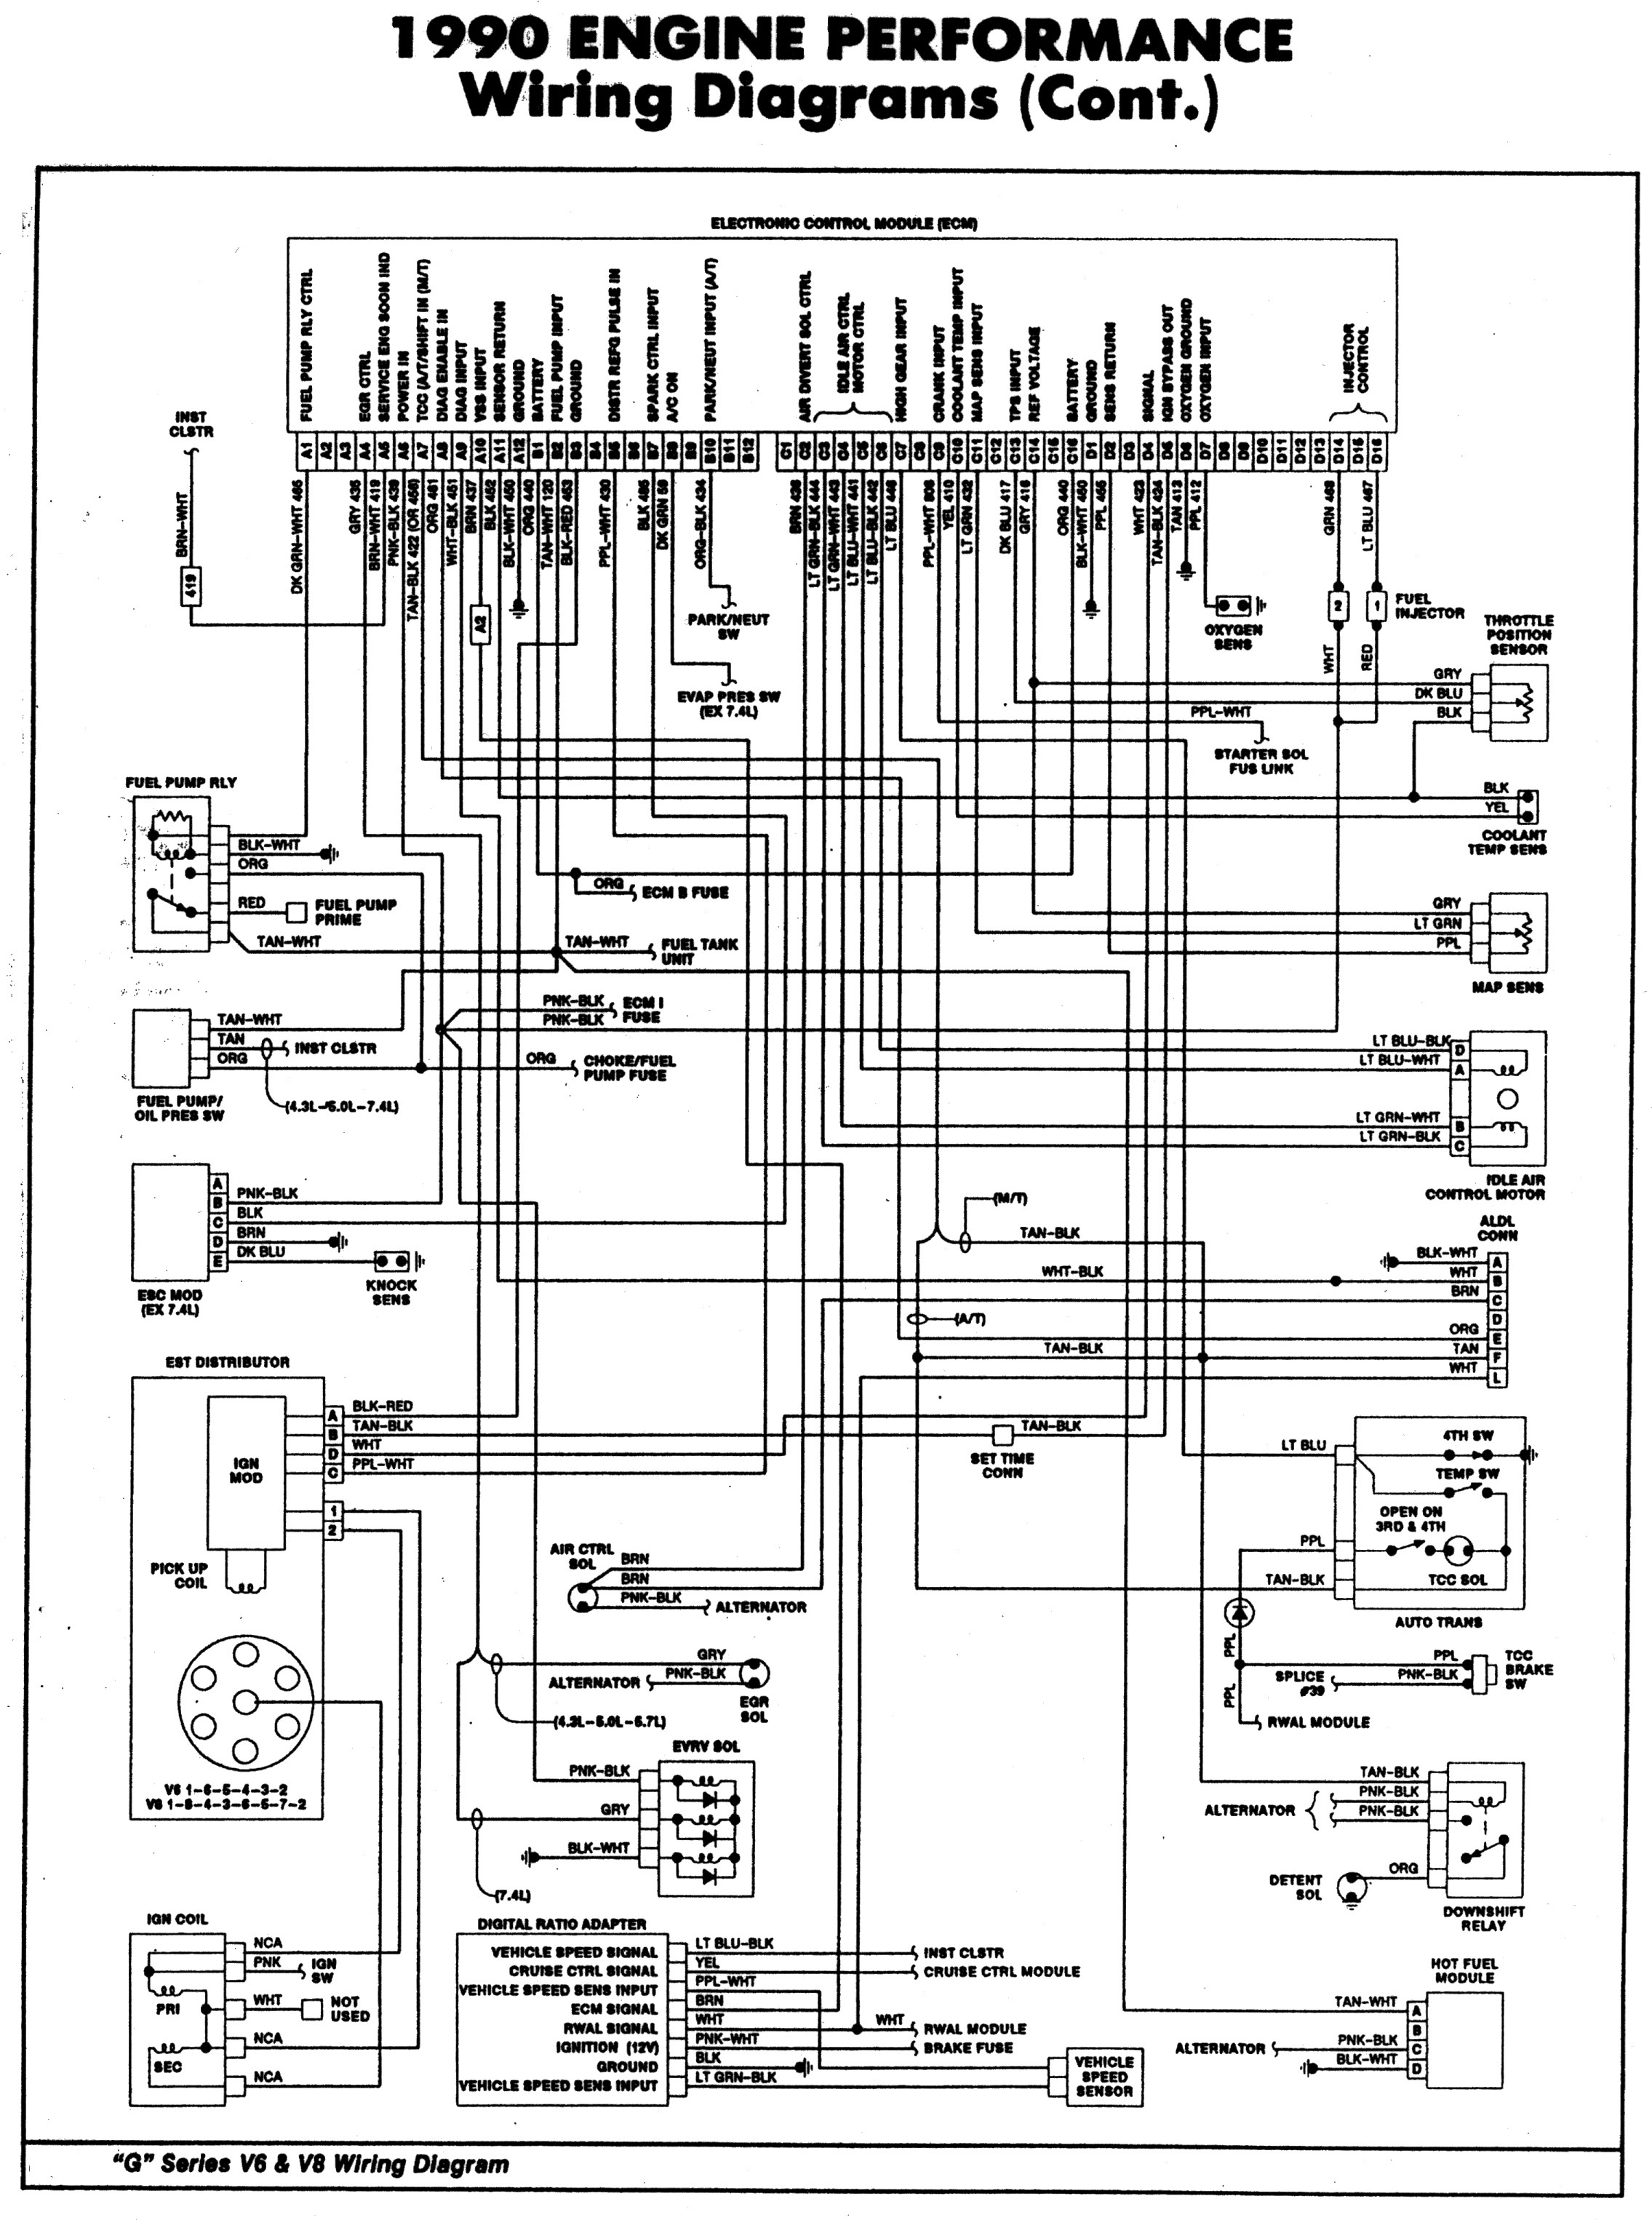 1990 chevy 350 tbi wiring diagram wiring diagrams konsult fuel further 1990 chevy 350 tbi fuel system diagram on inline fuel [ 2271 x 3051 Pixel ]